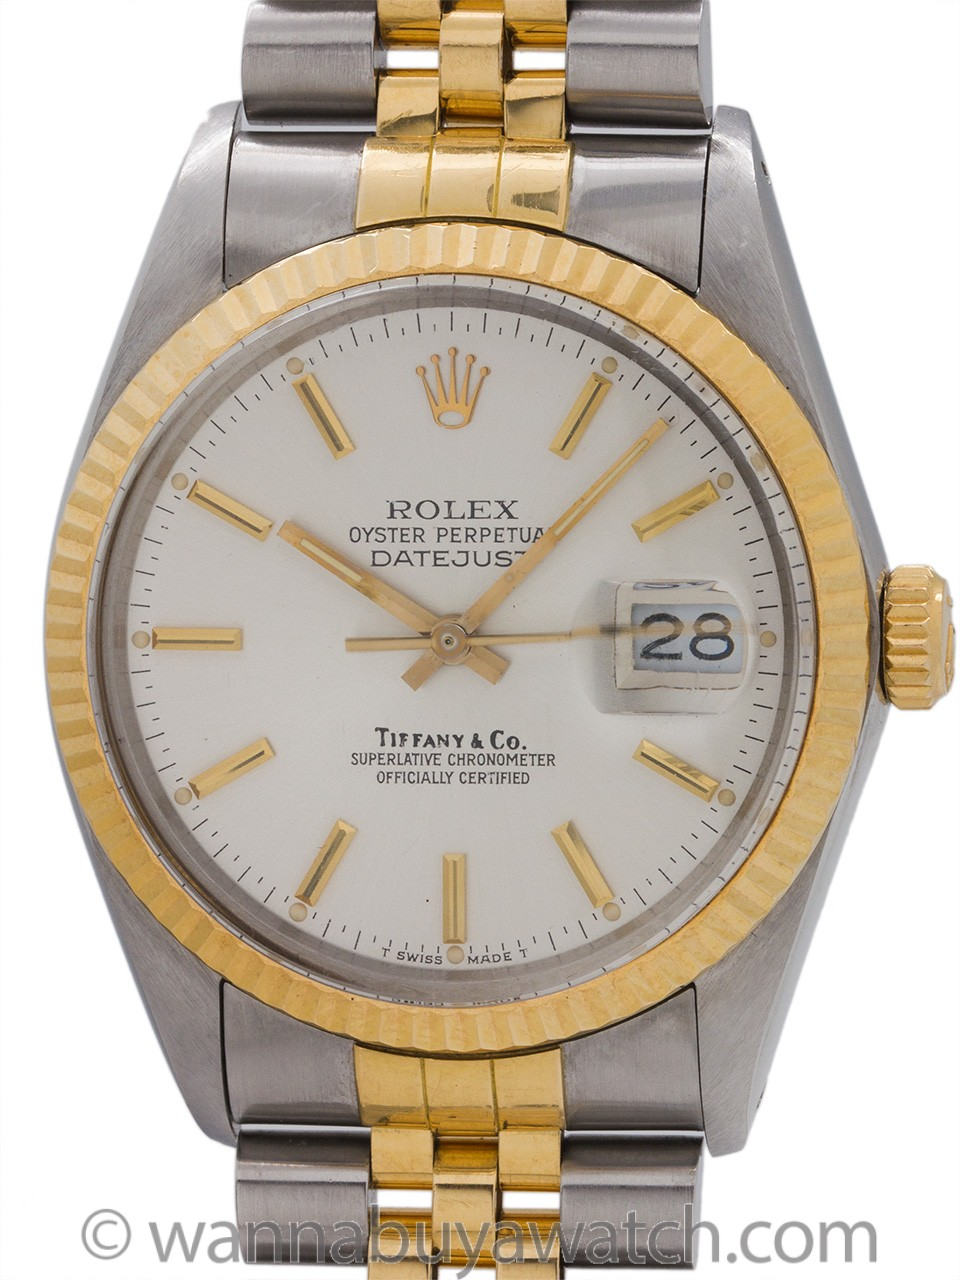 Rolex Datejust ref 16013 Tiffany & Co SS/18K YG circa 1989 Presidential Provenance?